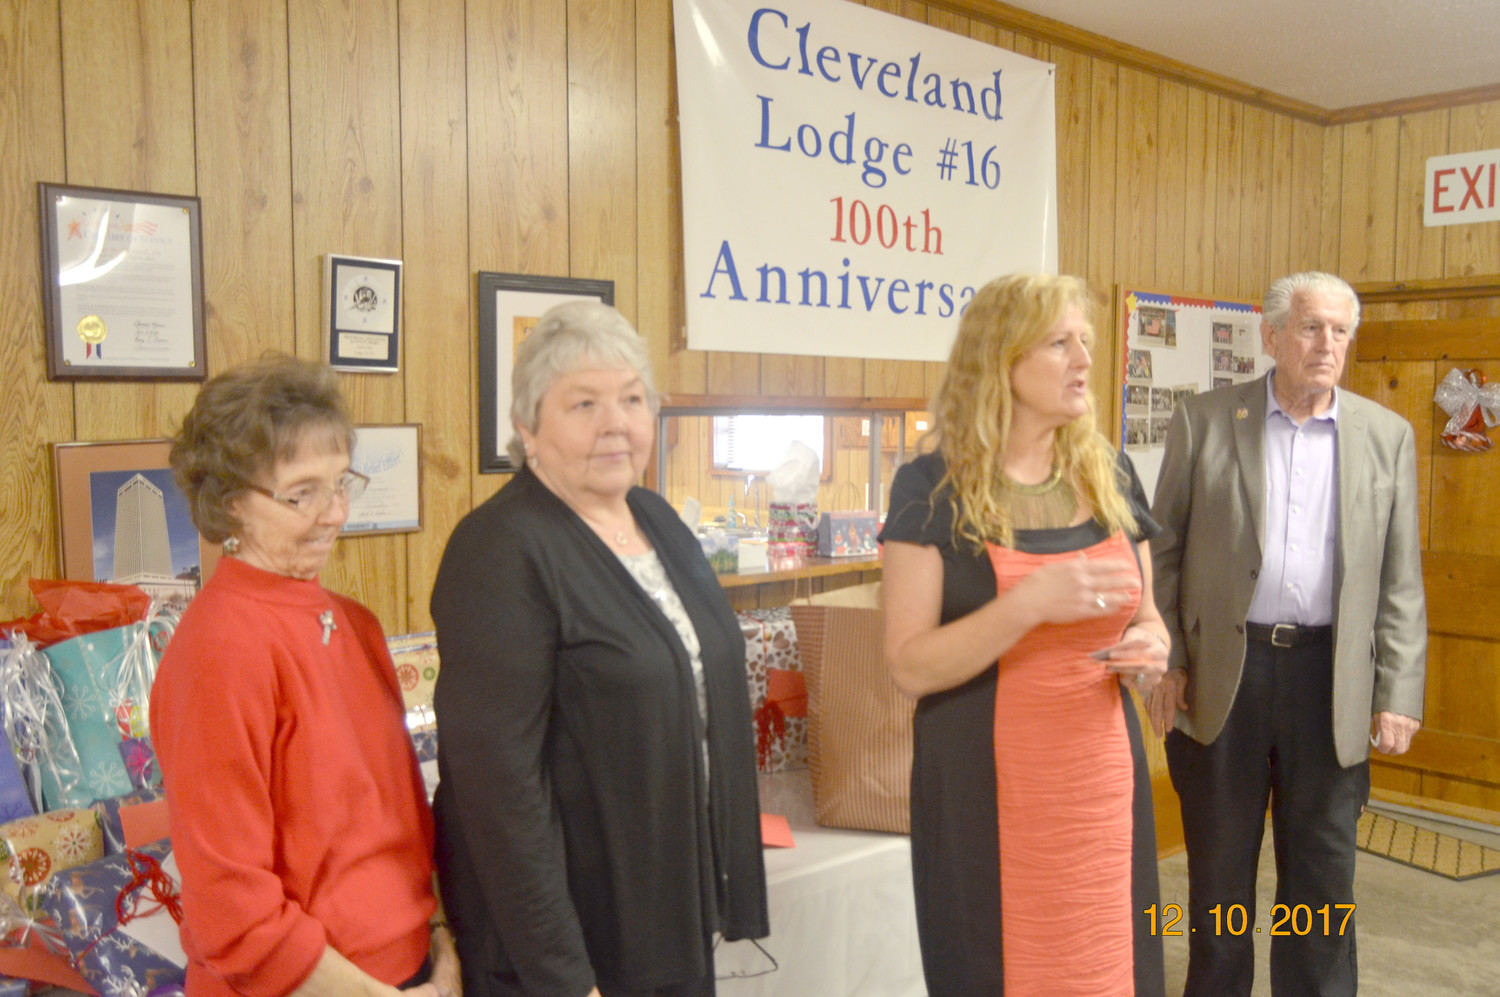 Chapter 15 Woodmen Life presented gift cards to Christine Miller and Eula Kile for all they do for the chapter. Debbie Collins, treasurer, presented the cards. At right is WW Johnson.